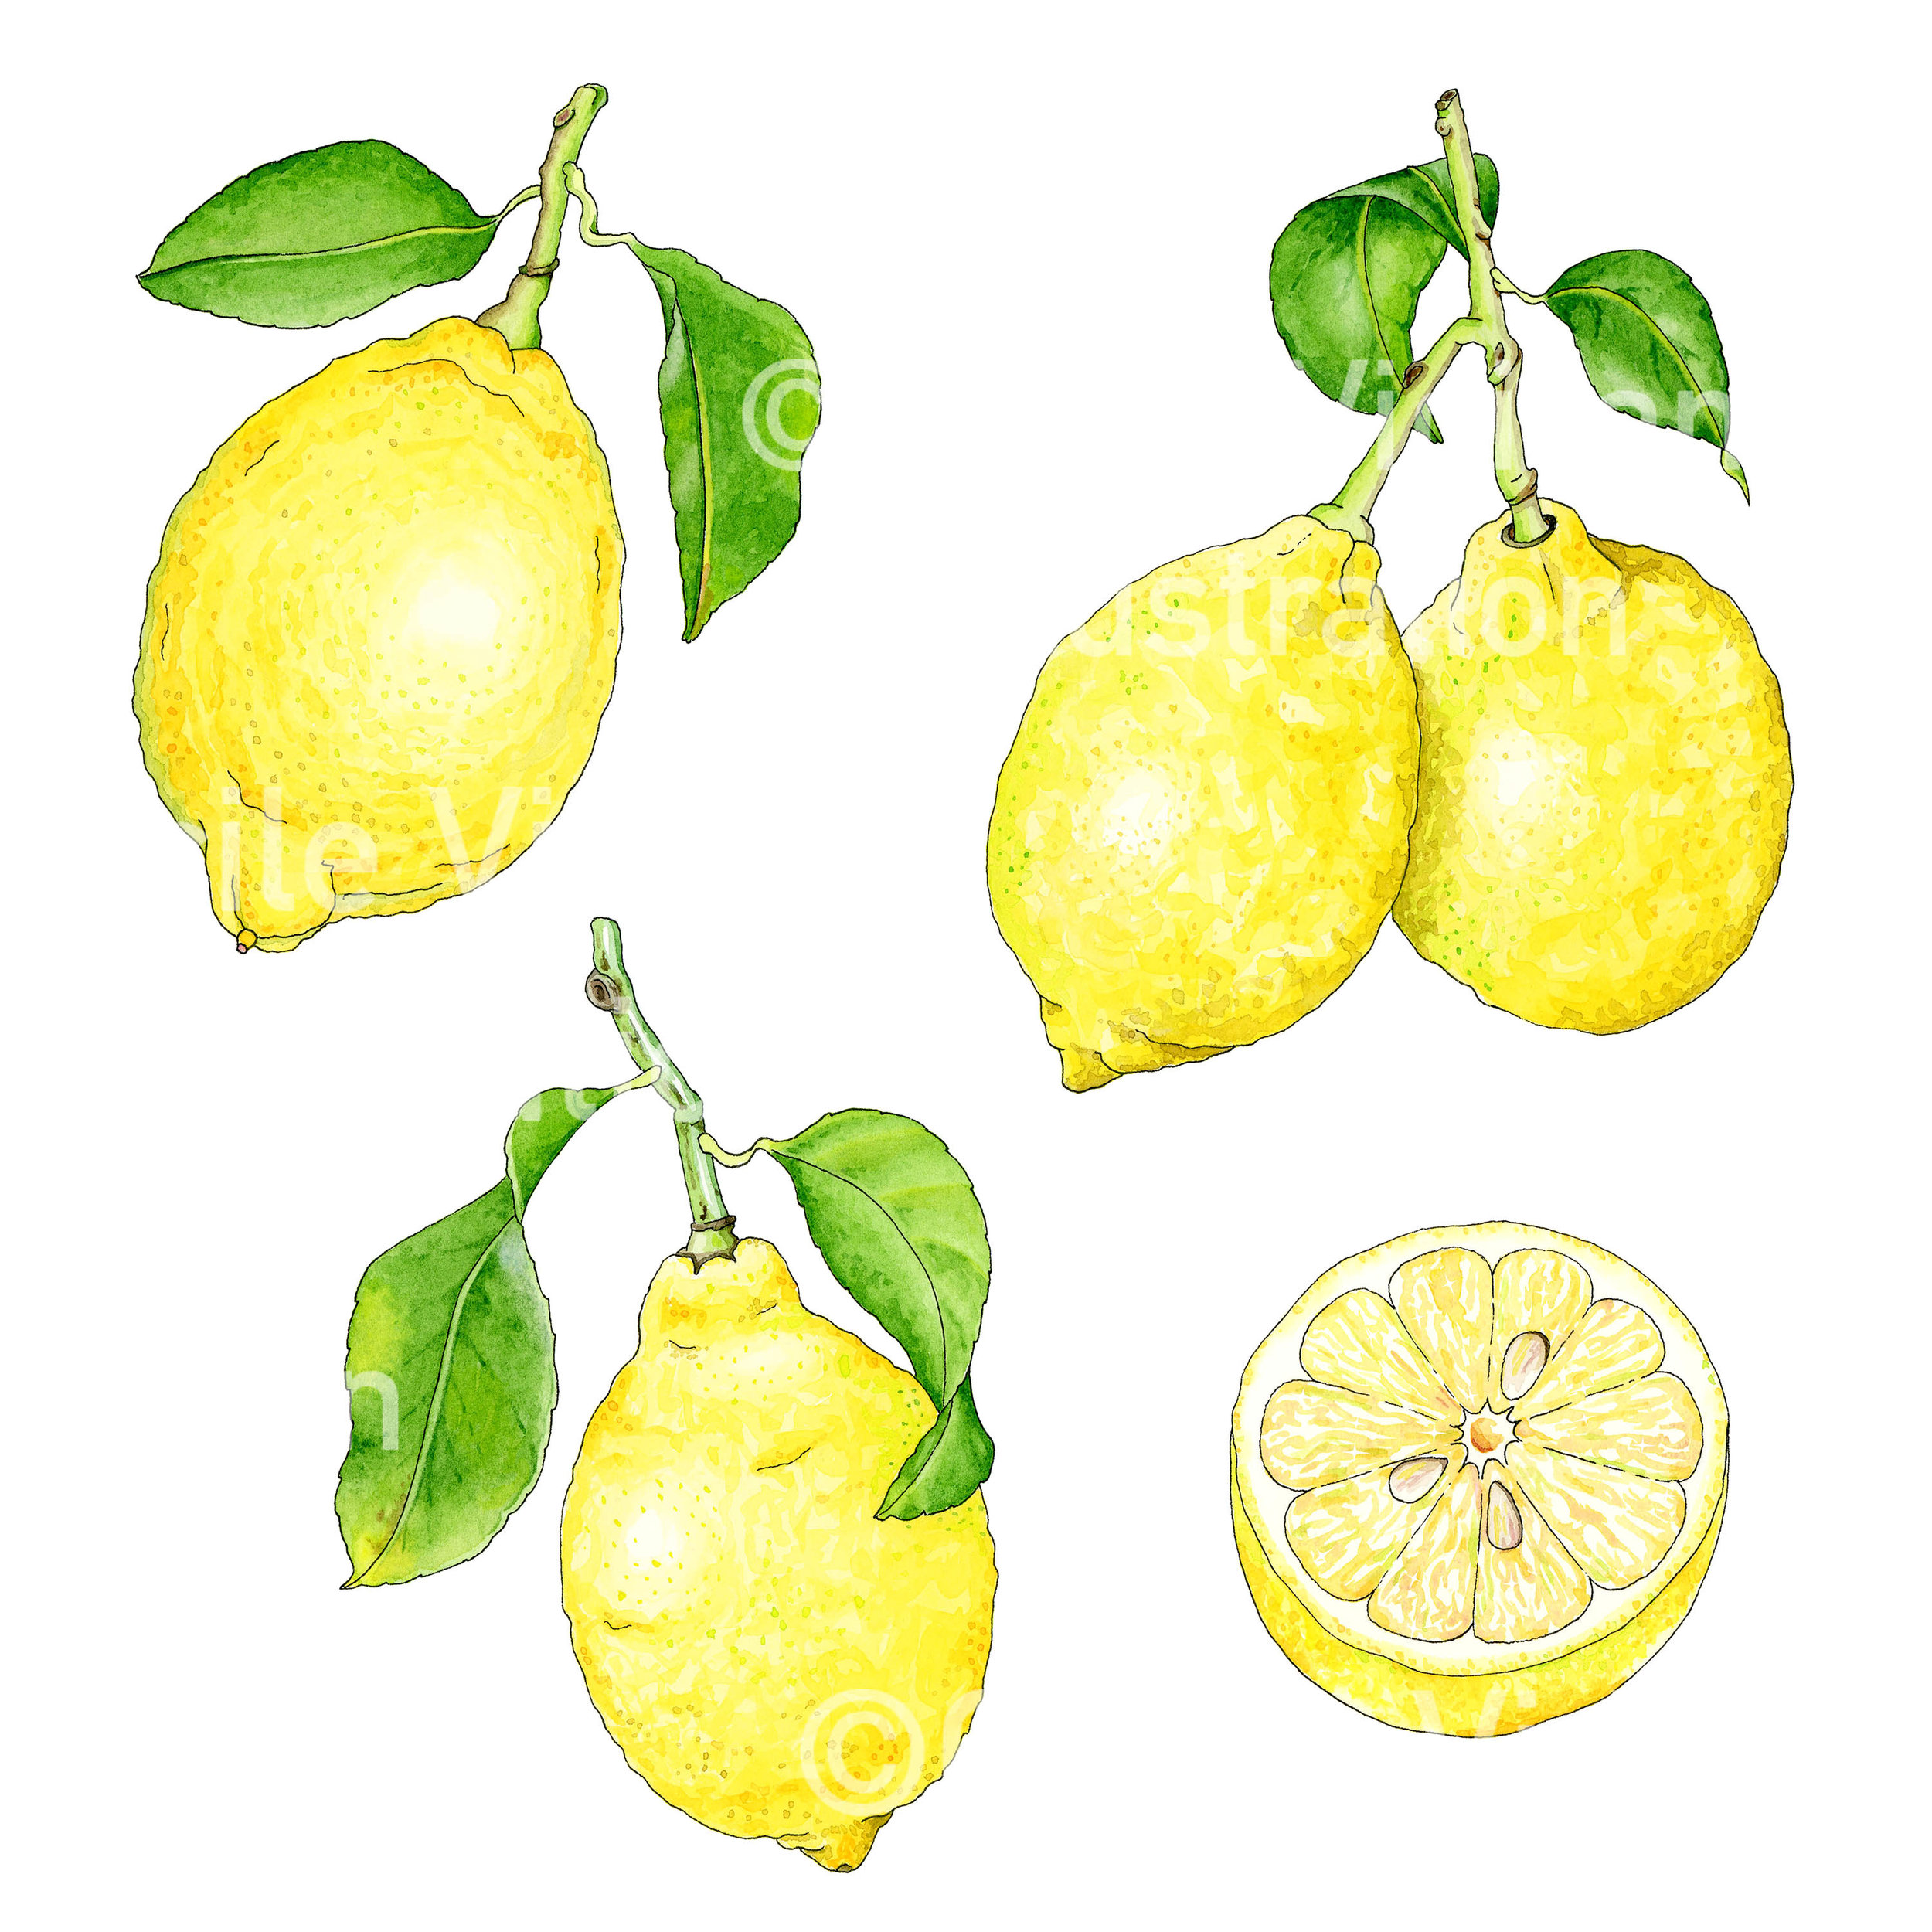 Eureka lemons, created for the  Lemonayo Kickstarter .